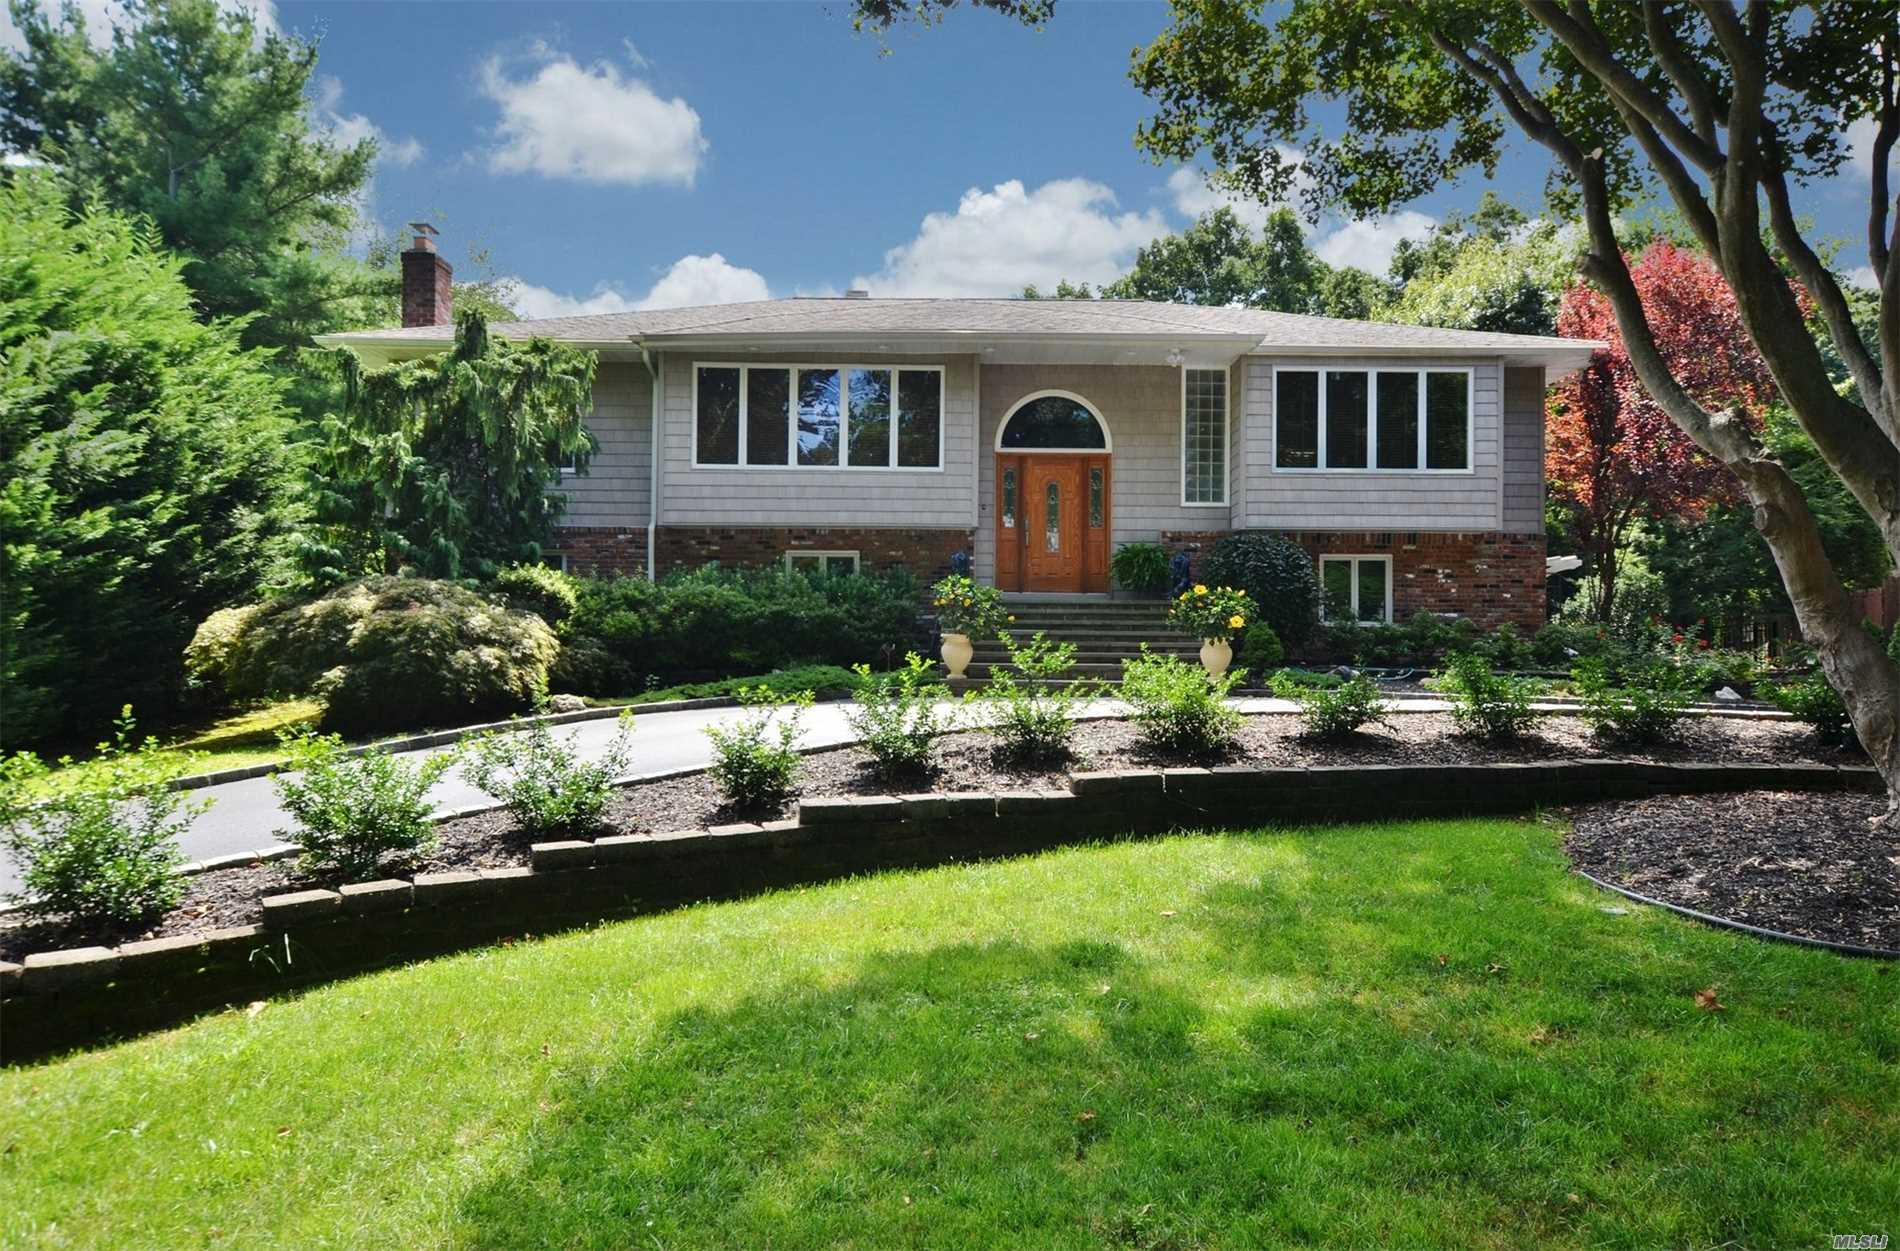 Stunning Curb Appeal Leading To Beautiful 6 Bedroom, 3 Bath spacious home. Situated on Private Acre of Professionally Landscaped & Cared For Property. Hardwood Floors, Gourmet Updated Eiks W/Custom Cabinets and Granite Countertops, Stainless Steel Appliances, Sun-Drenched Family Room W/Sliders Leading To Outdoor Deck Overlooking Country Club Backyard w/Ig Pool And Fabulous Entertaining Spaces. A True Entertainer's Delight!